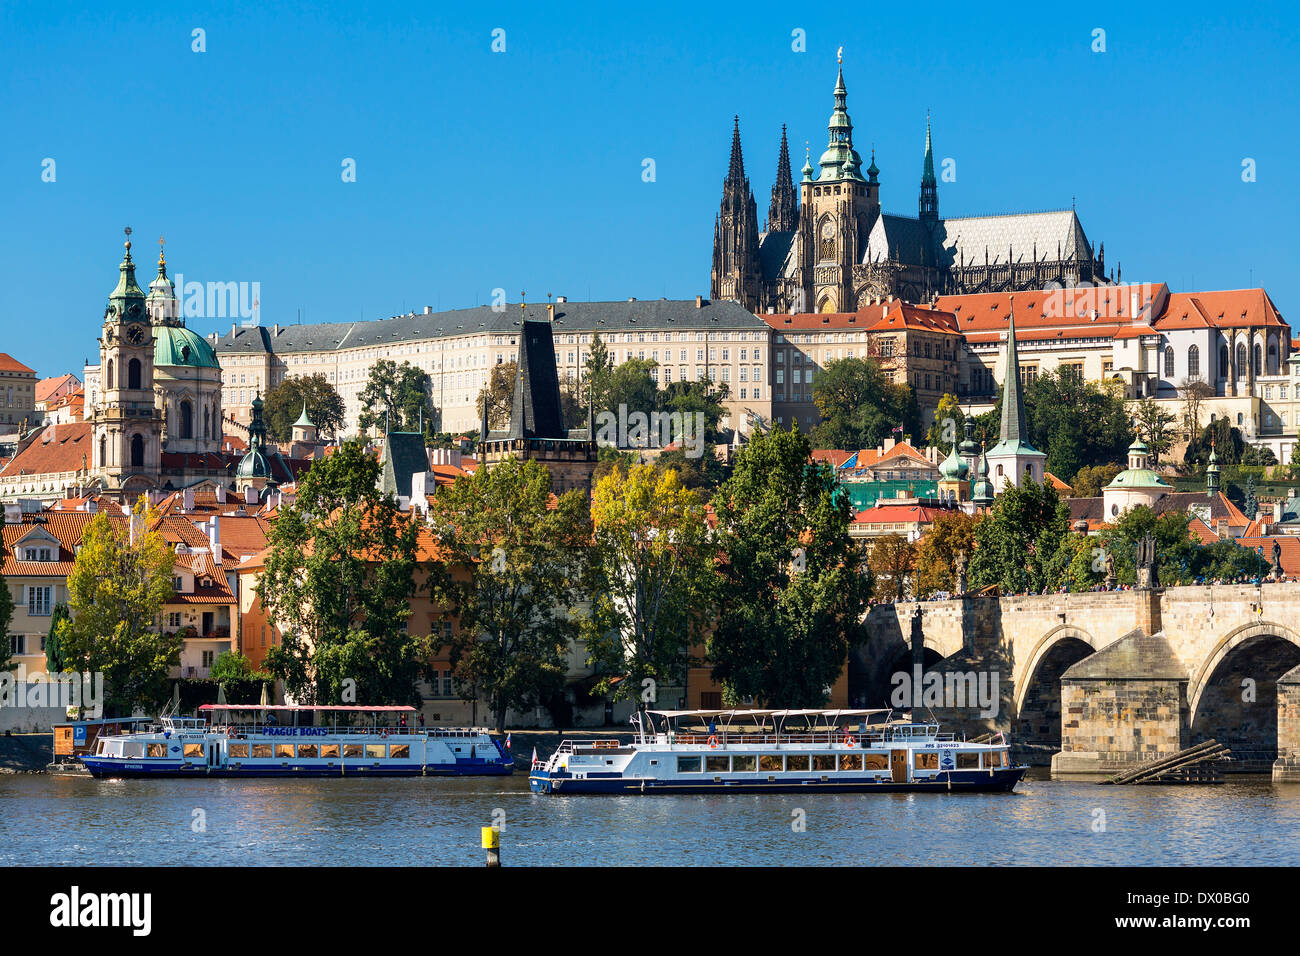 Prague, Castle and Cathedral Vltava River - Stock Image